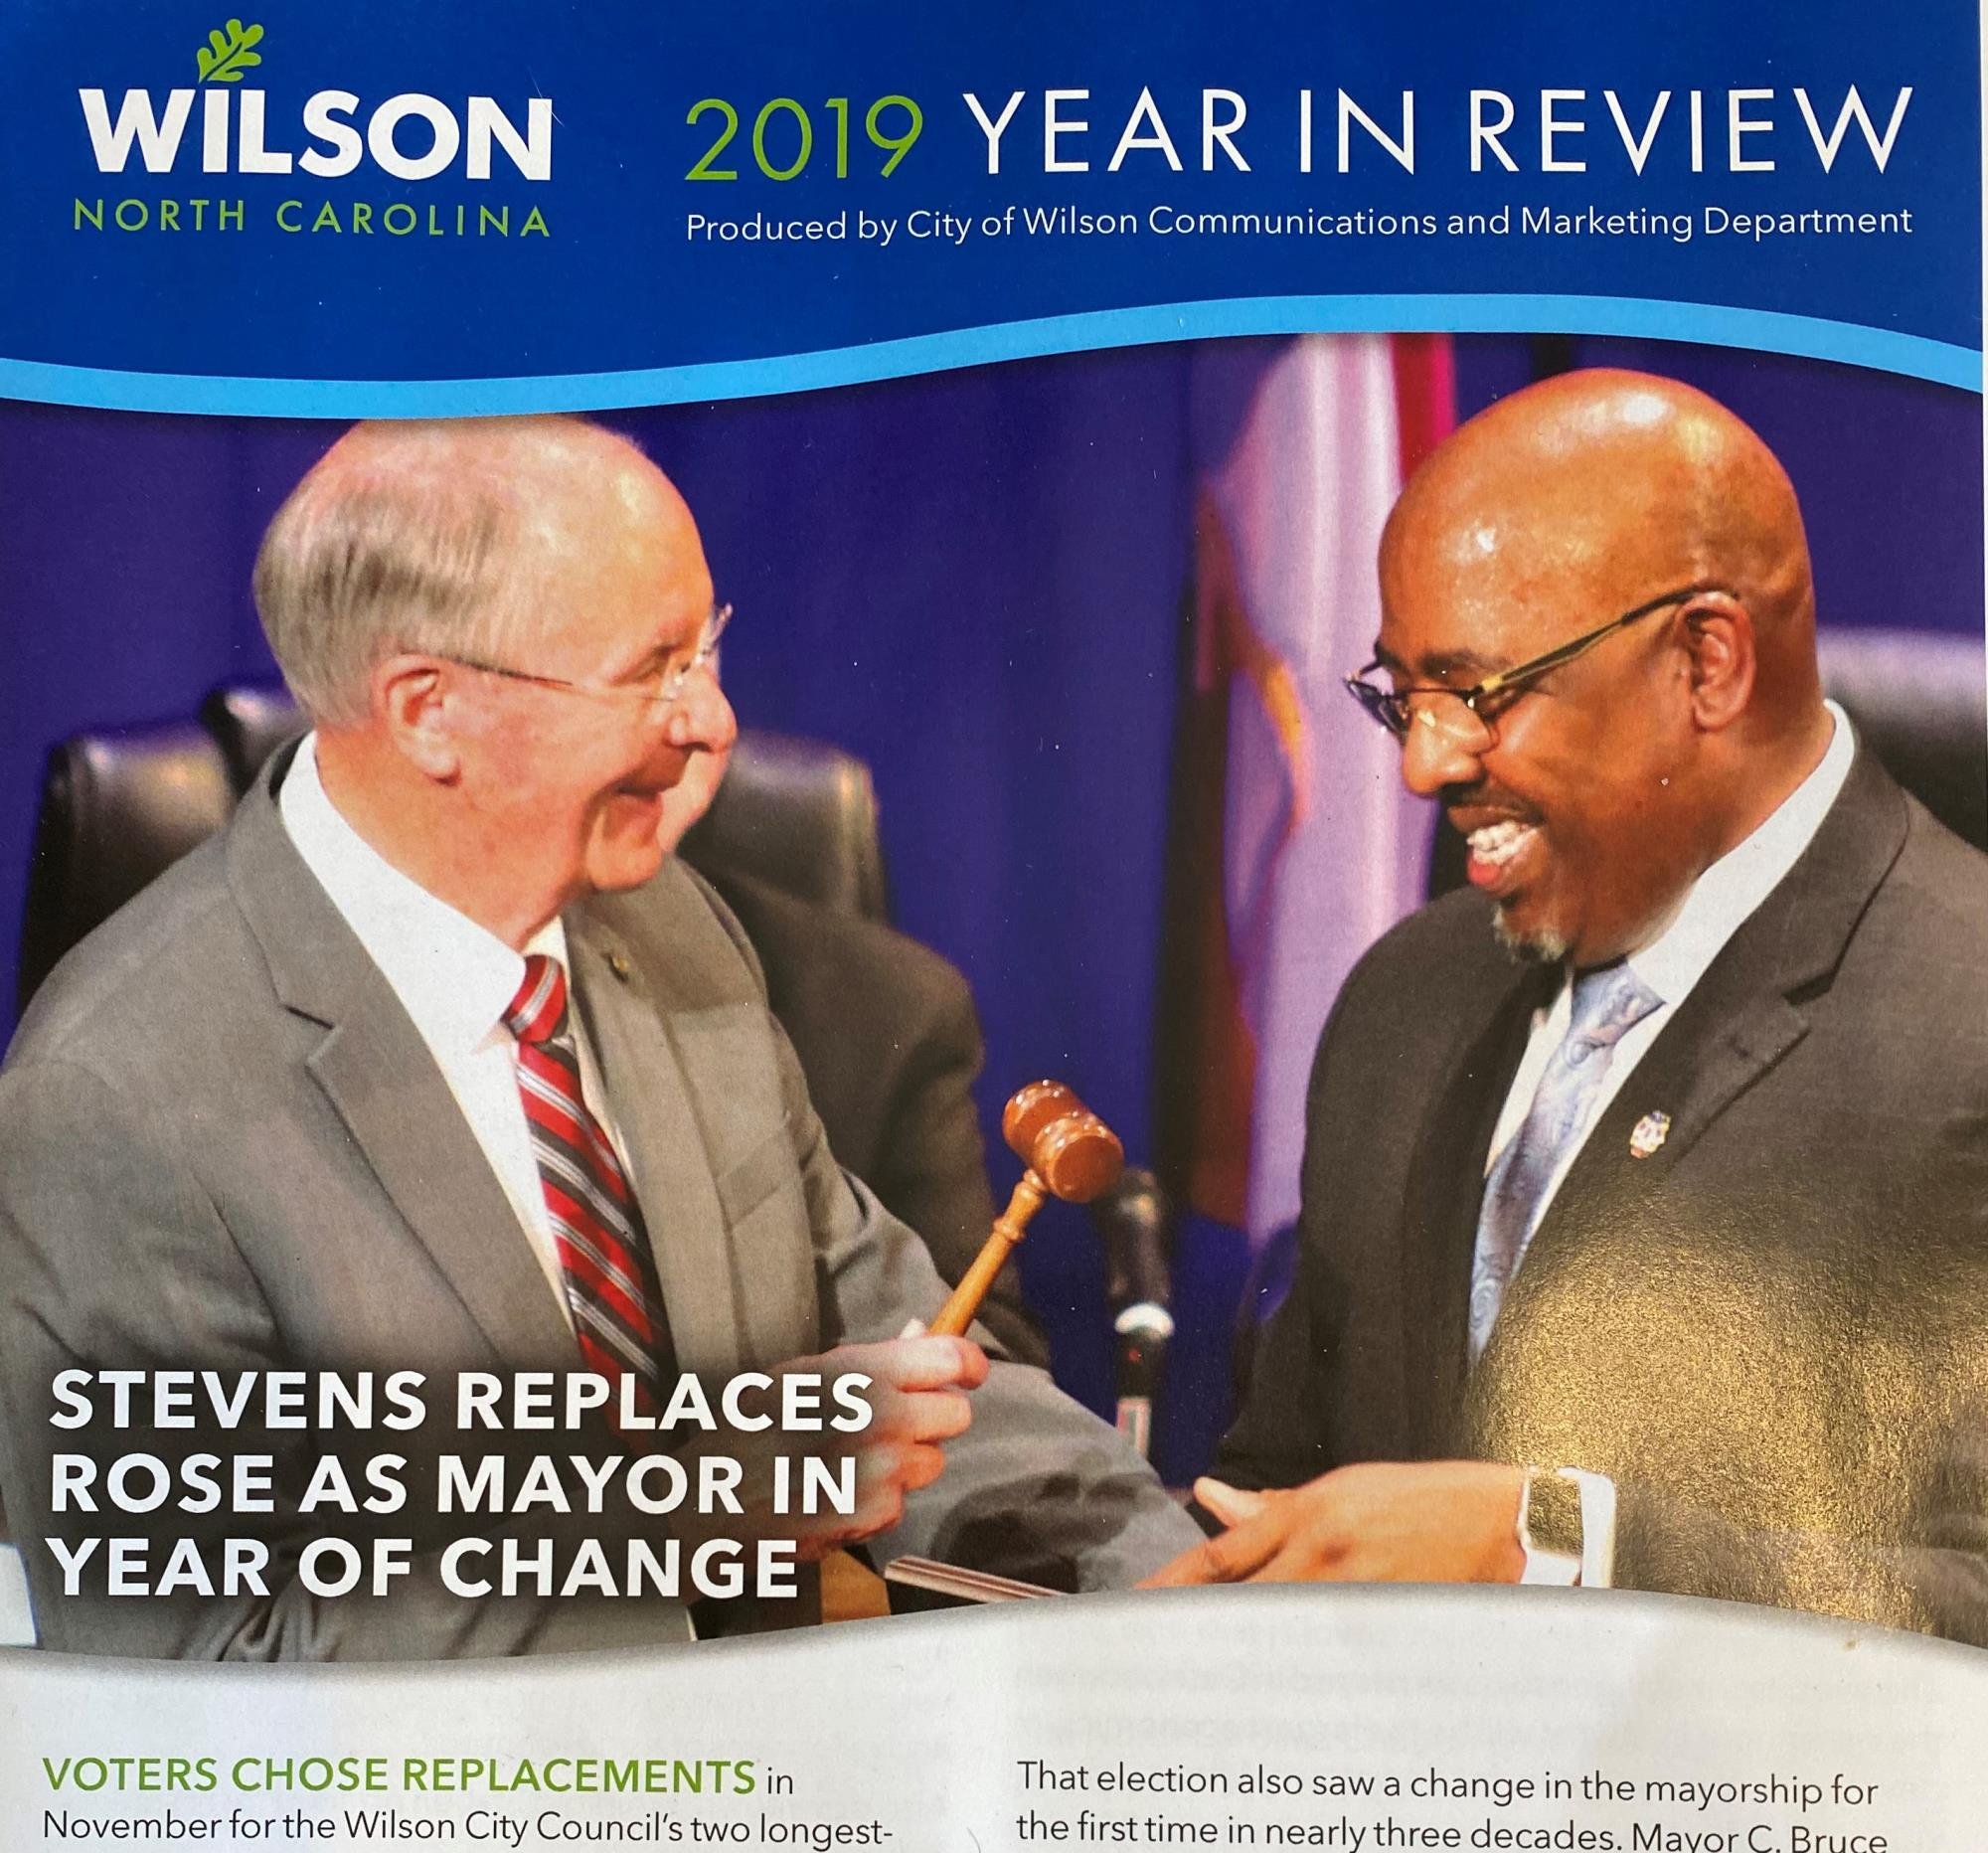 Wilson 2019 Year in Review